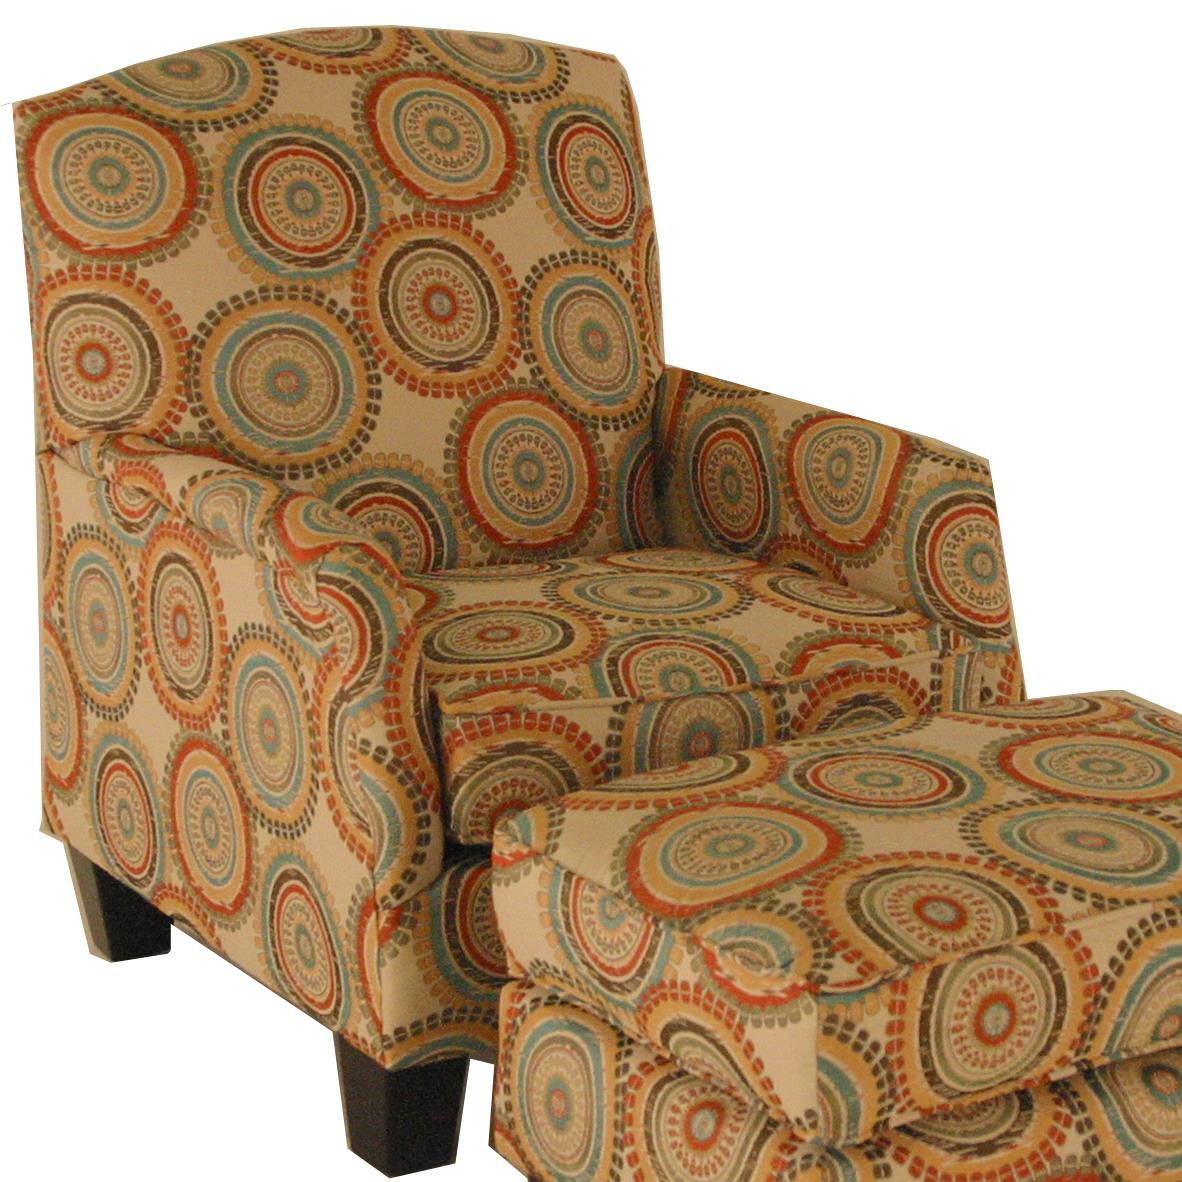 Chairs America Accent Chairs and Ottomans Transitional Chair - Item Number: 1412-IncognitoFiesta